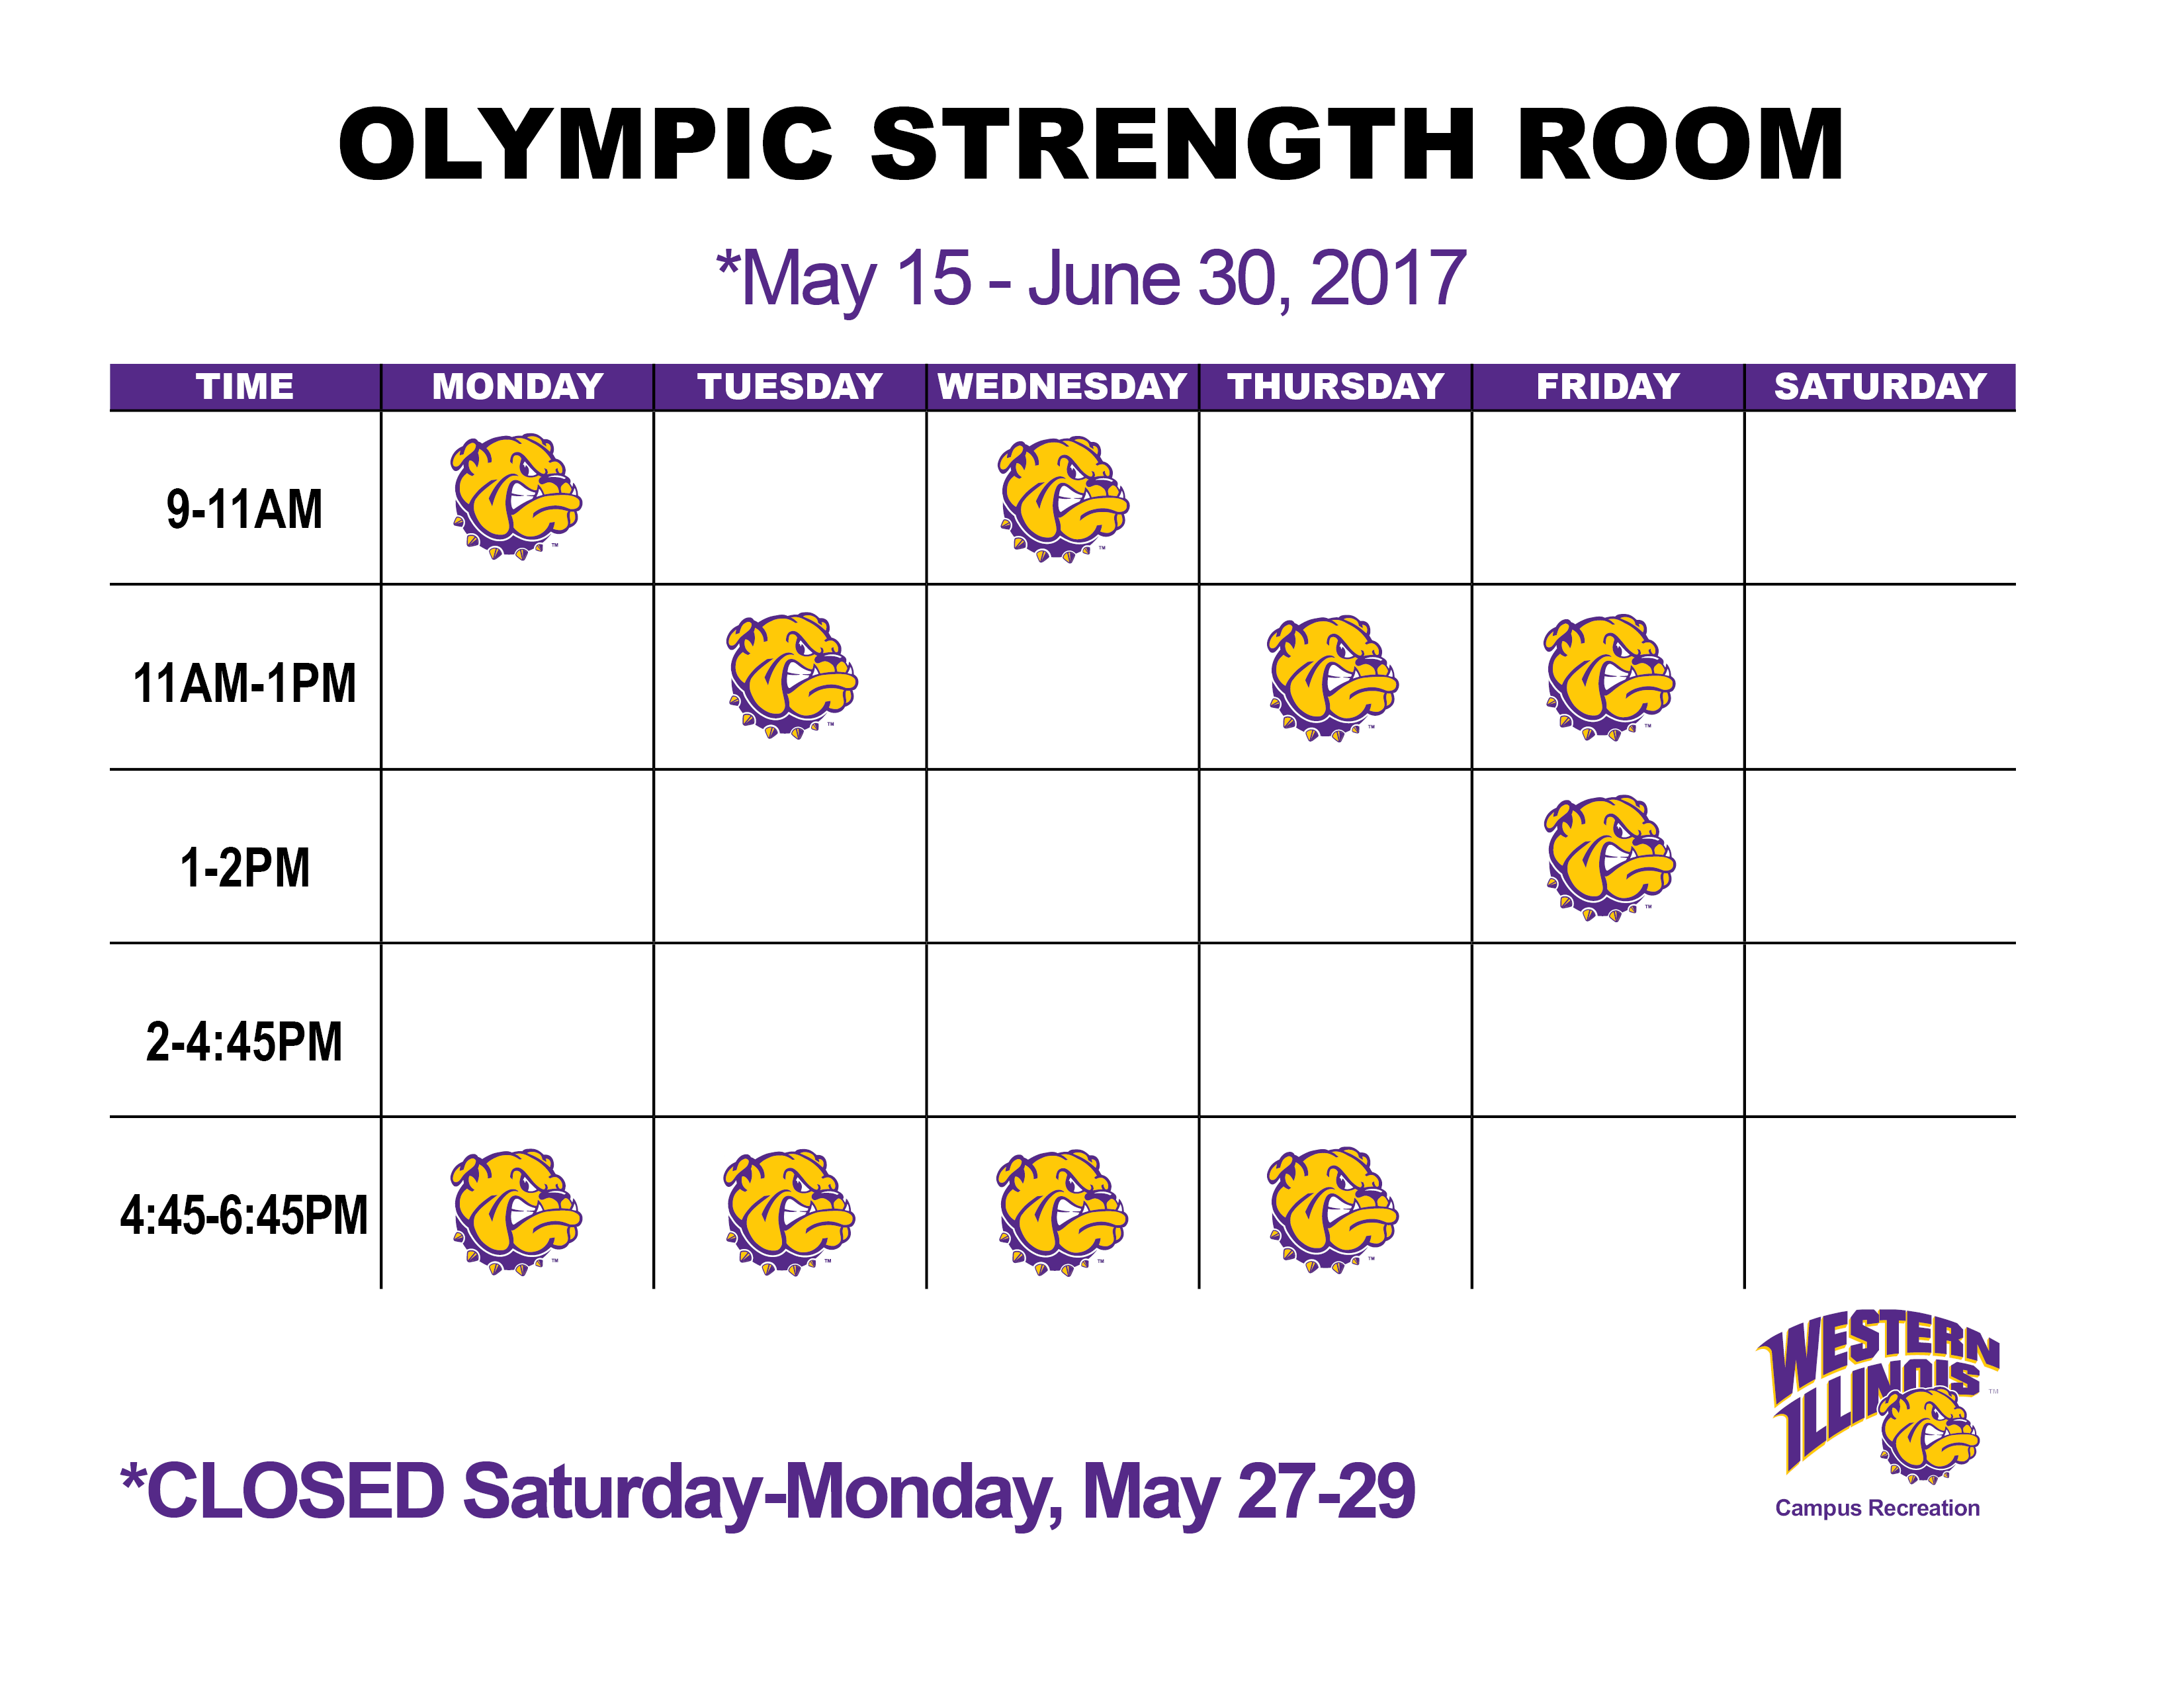 Olympic Strength Room Hours May 15-June 30, 2017